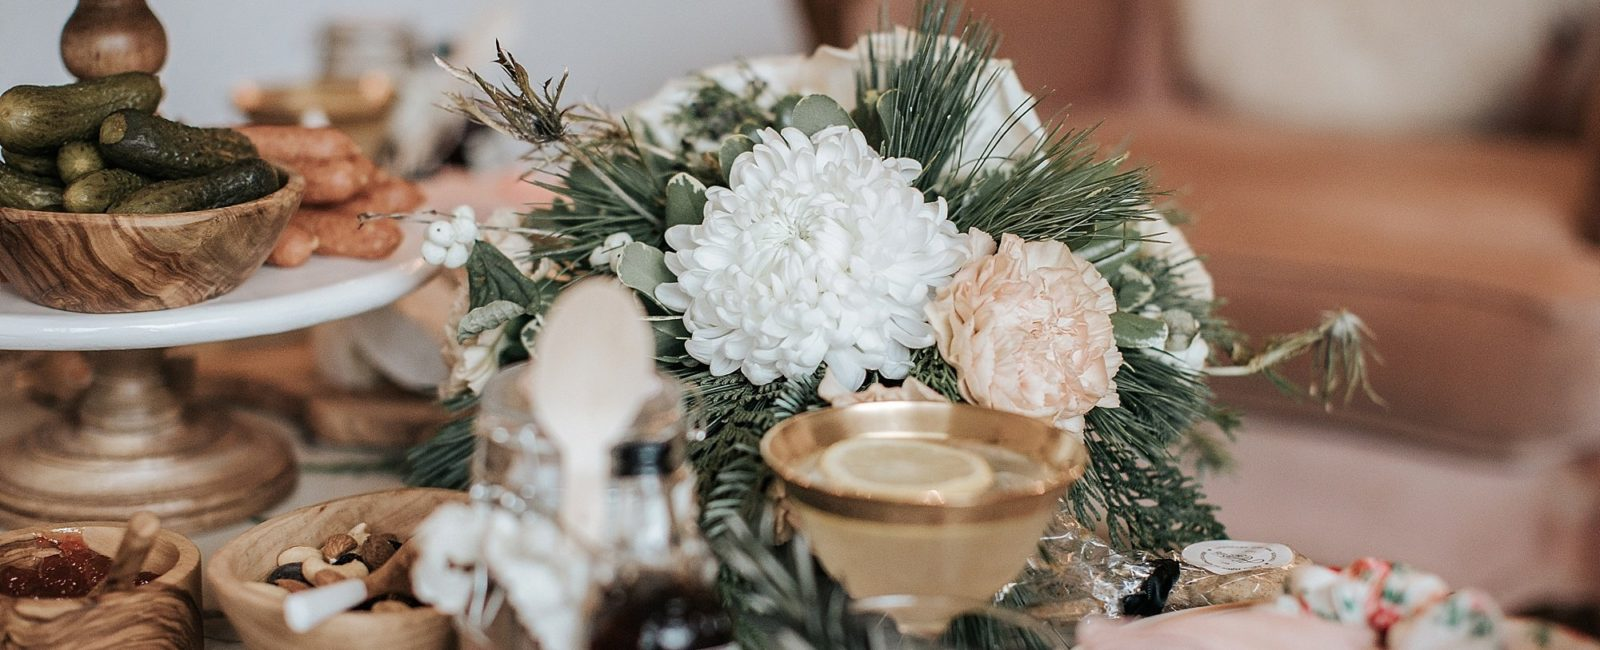 Holiday Hosting Table Setting   DIY'S, Ideas and More…